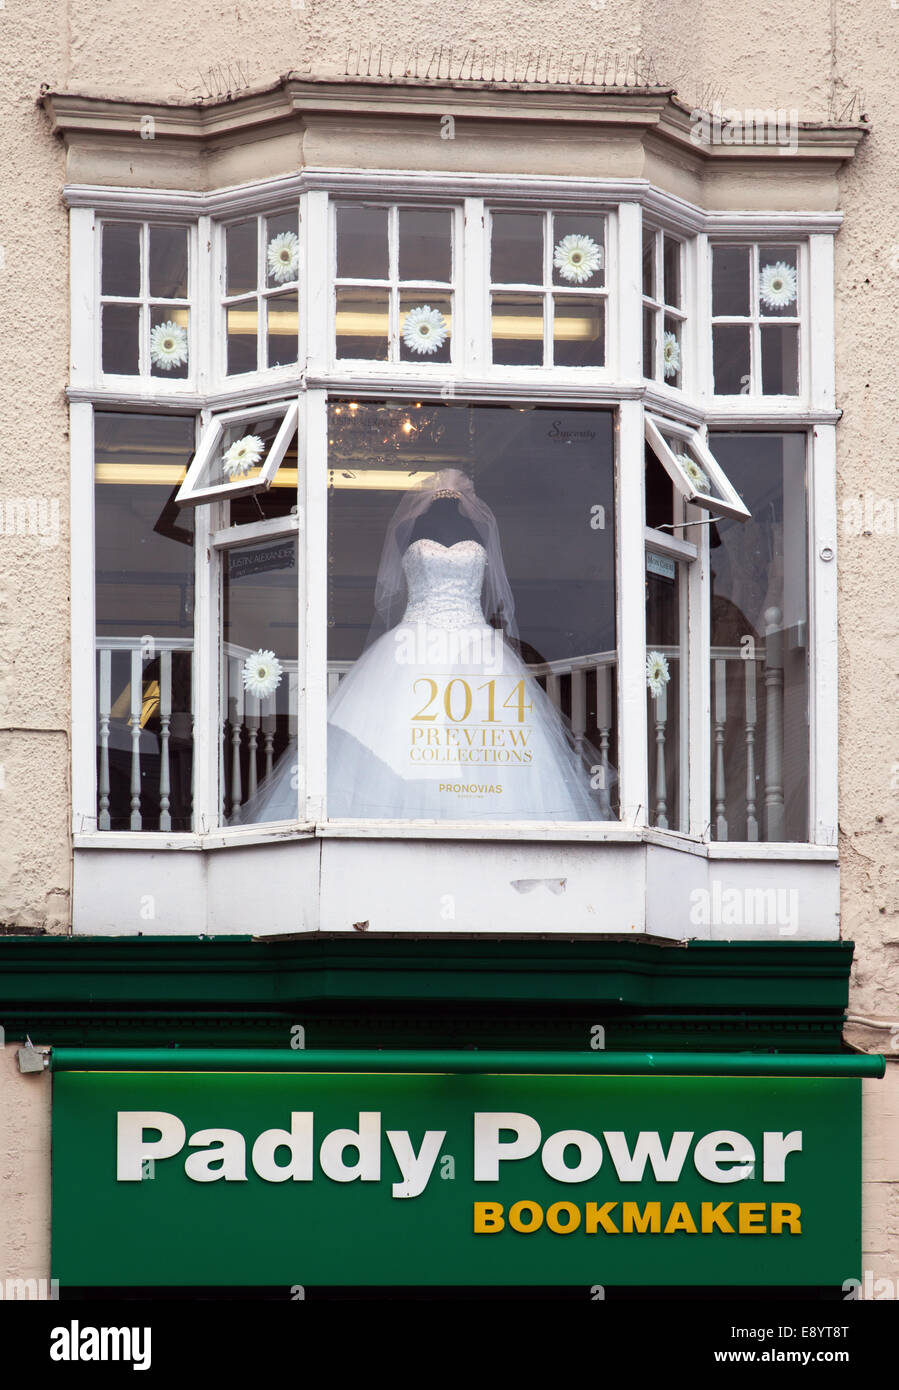 'Paddy Power' Betting Shop Bookmaker and Bridal Wear business in Williamson Square, Liverpool, Merseyside, - Stock Image